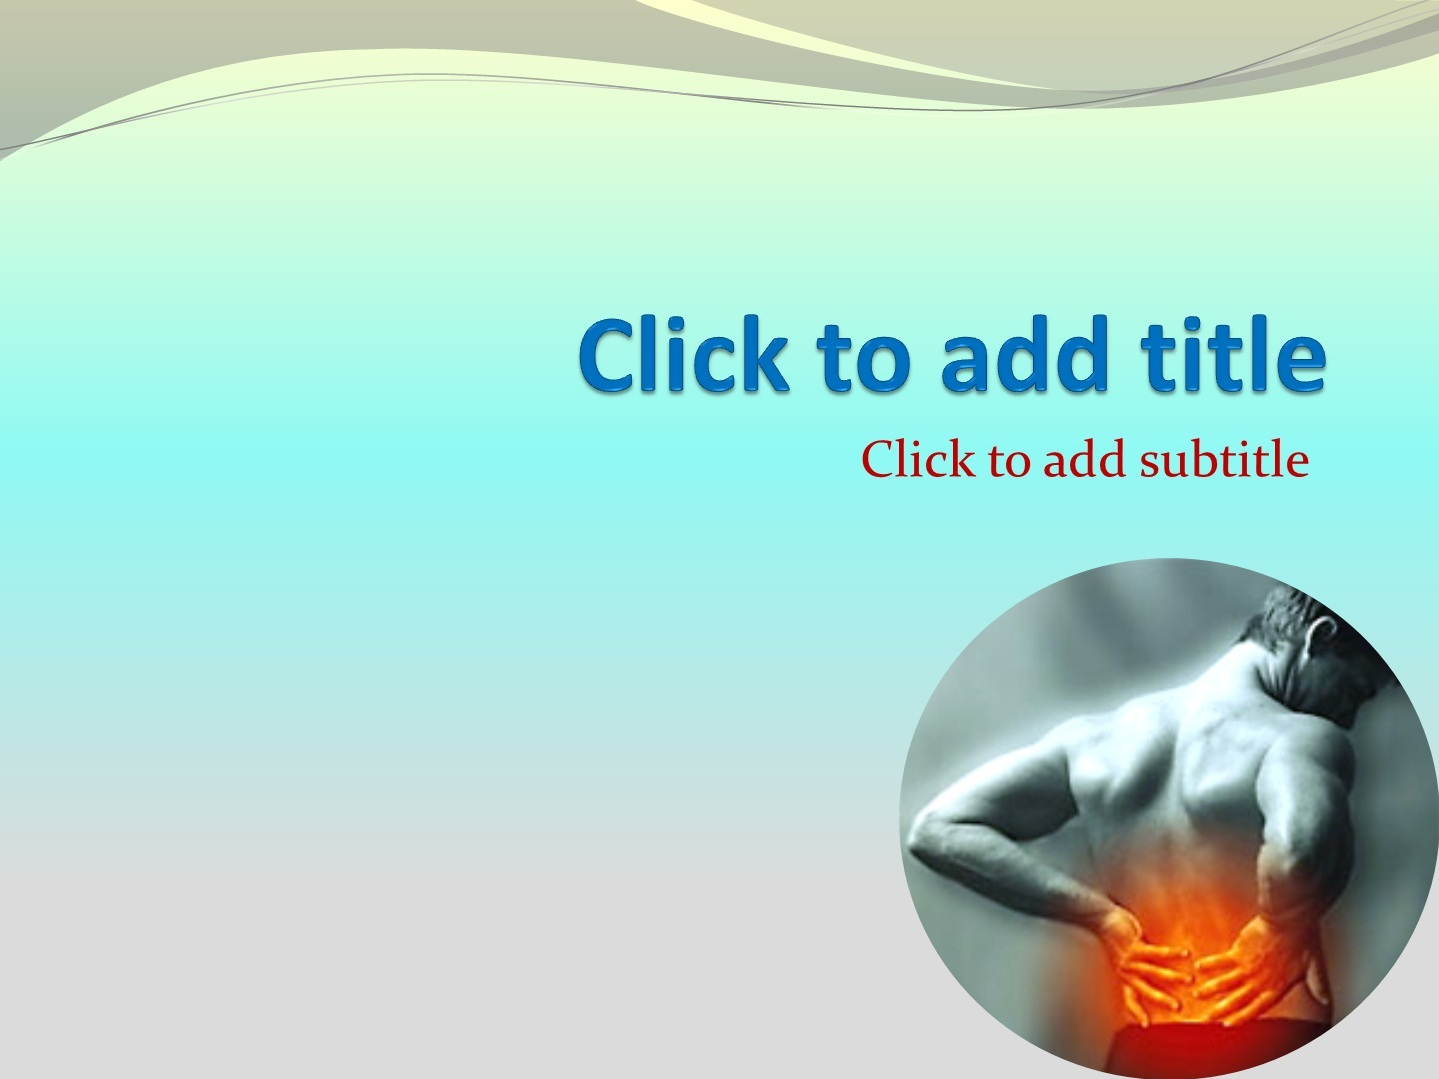 Orthopedics rheumatology powerpoint template free download this is an orthopedics rheumatology powerpoint template this medical powerpoint background shows a picture of a person with back pain toneelgroepblik Image collections